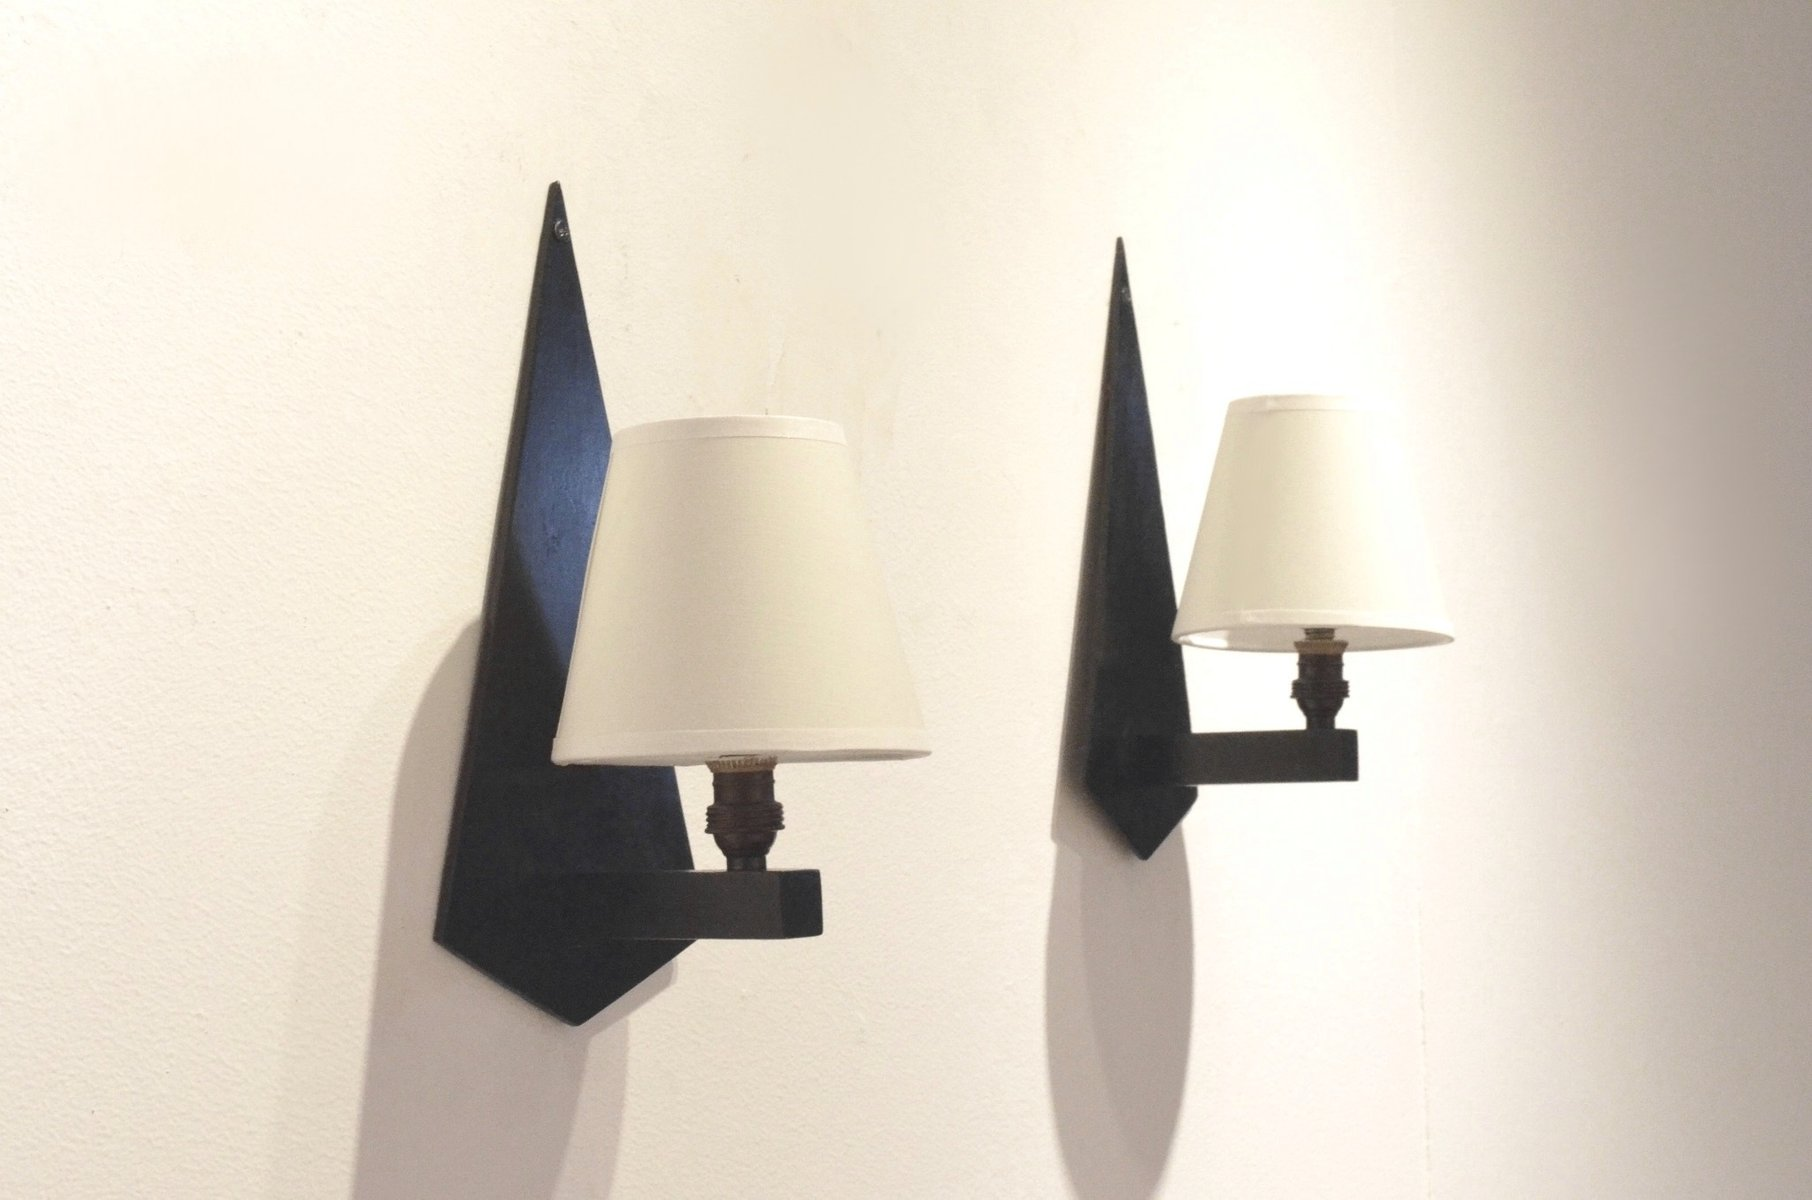 Constructivist Wall Sconces in Black Wood & Glass, Set of 2, 1930s for sale at Pamono